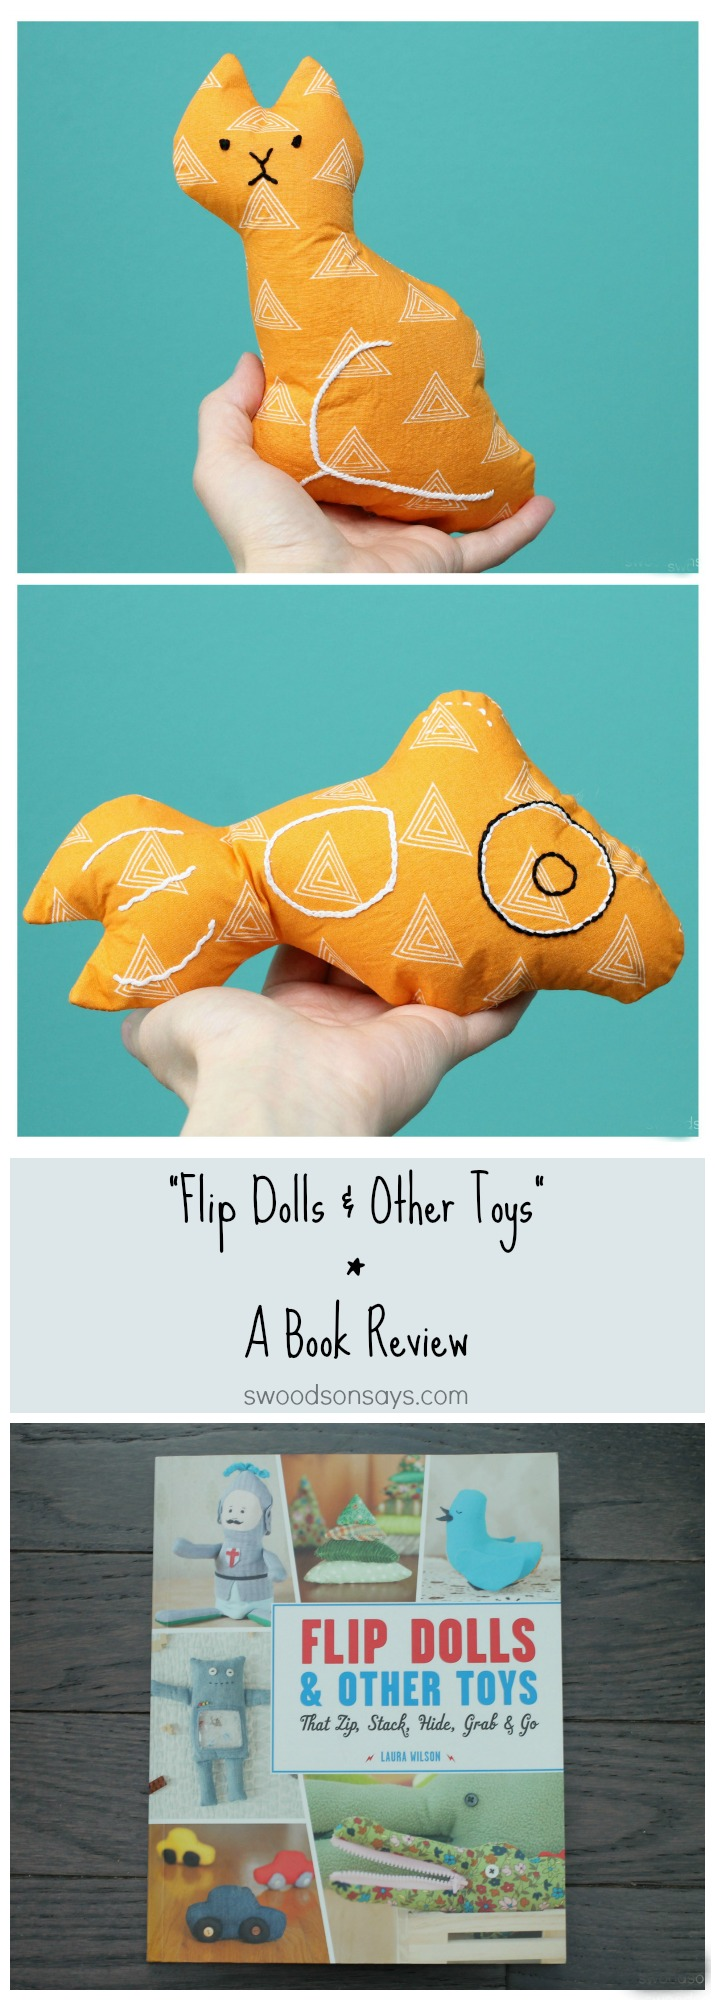 Softie Sewing Book Review